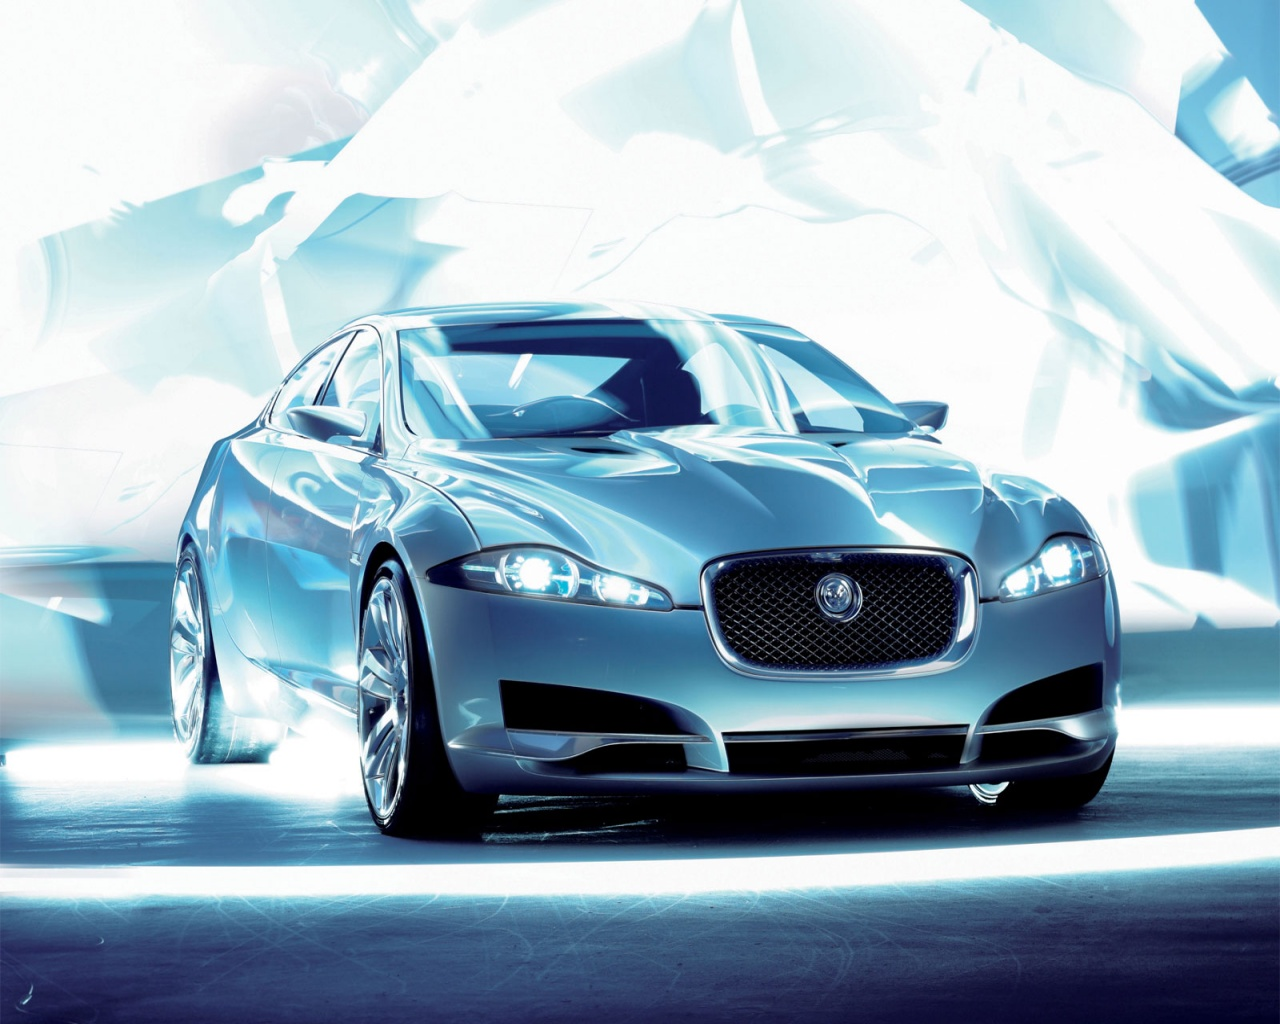 1280x1024 Jaguar C Xf Front Desktop Pc And Mac Wallpaper